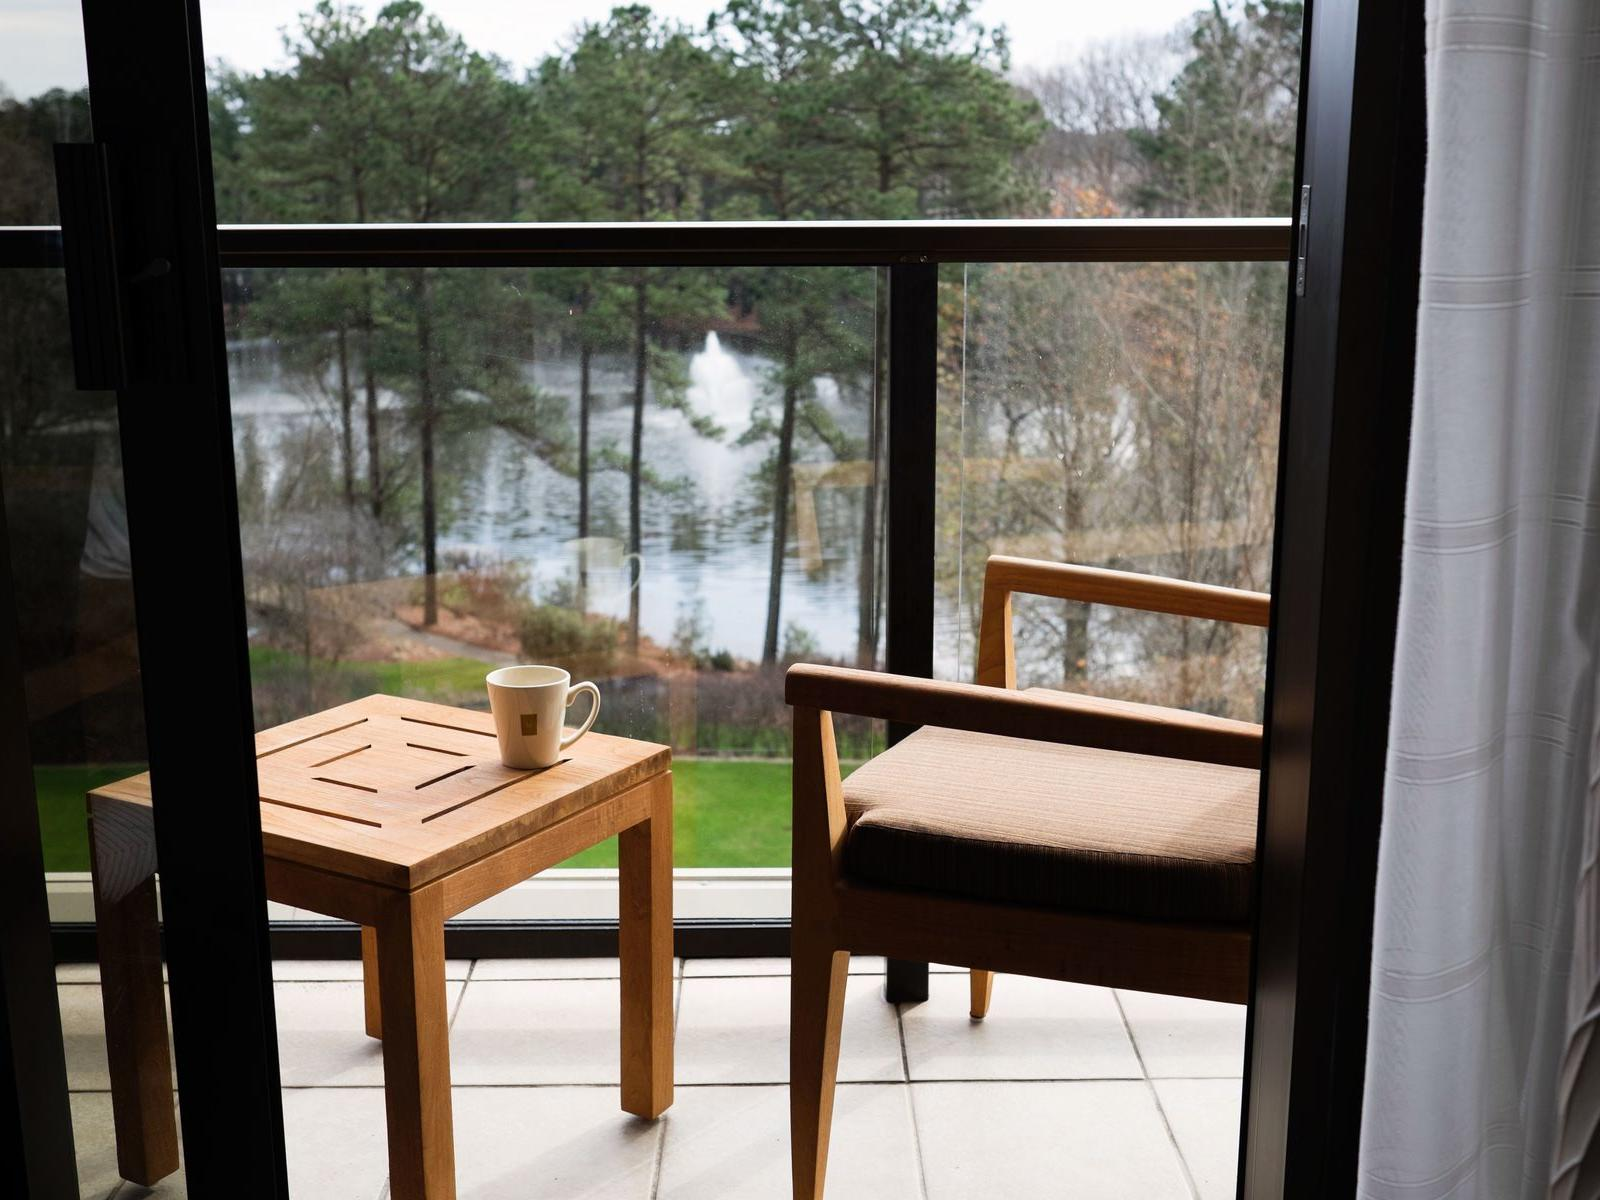 balcony of hotel with chairs and table overlooking lake